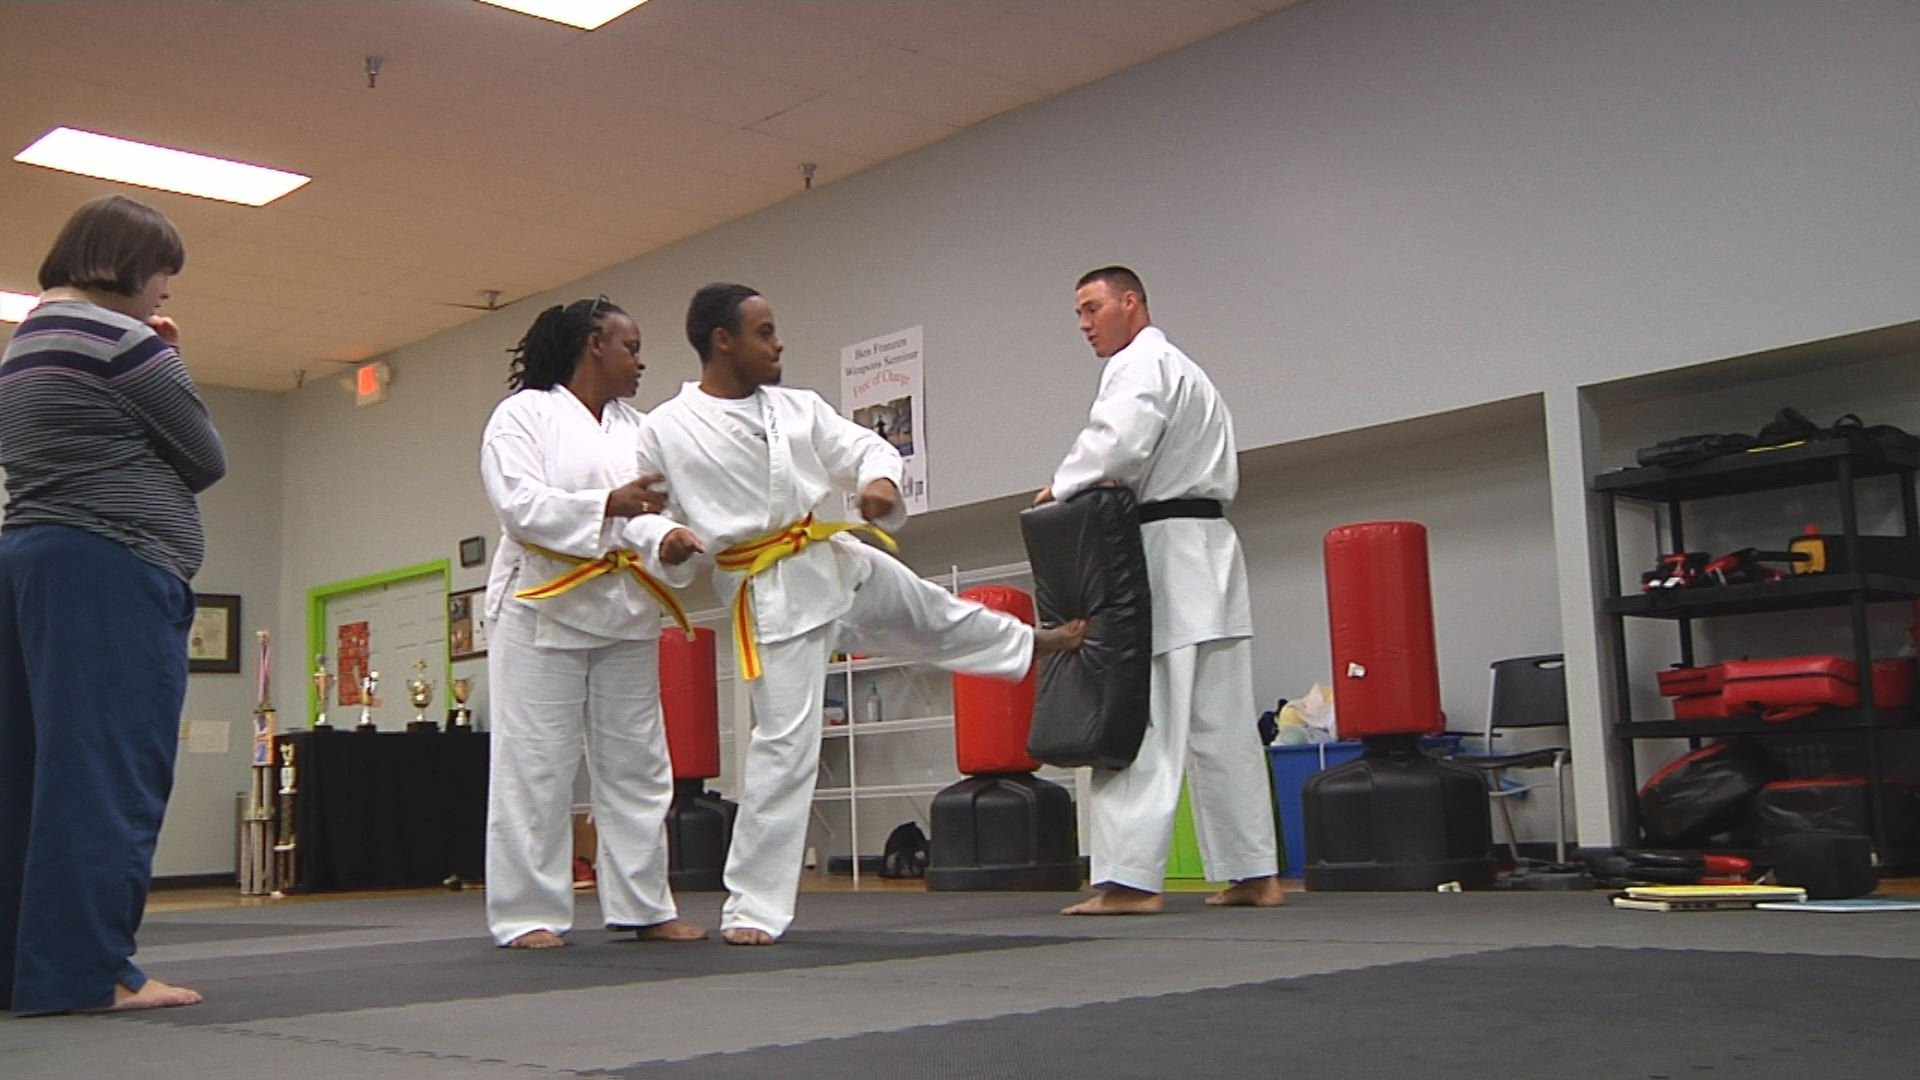 Smith teaches karate to kids and adults with autism.